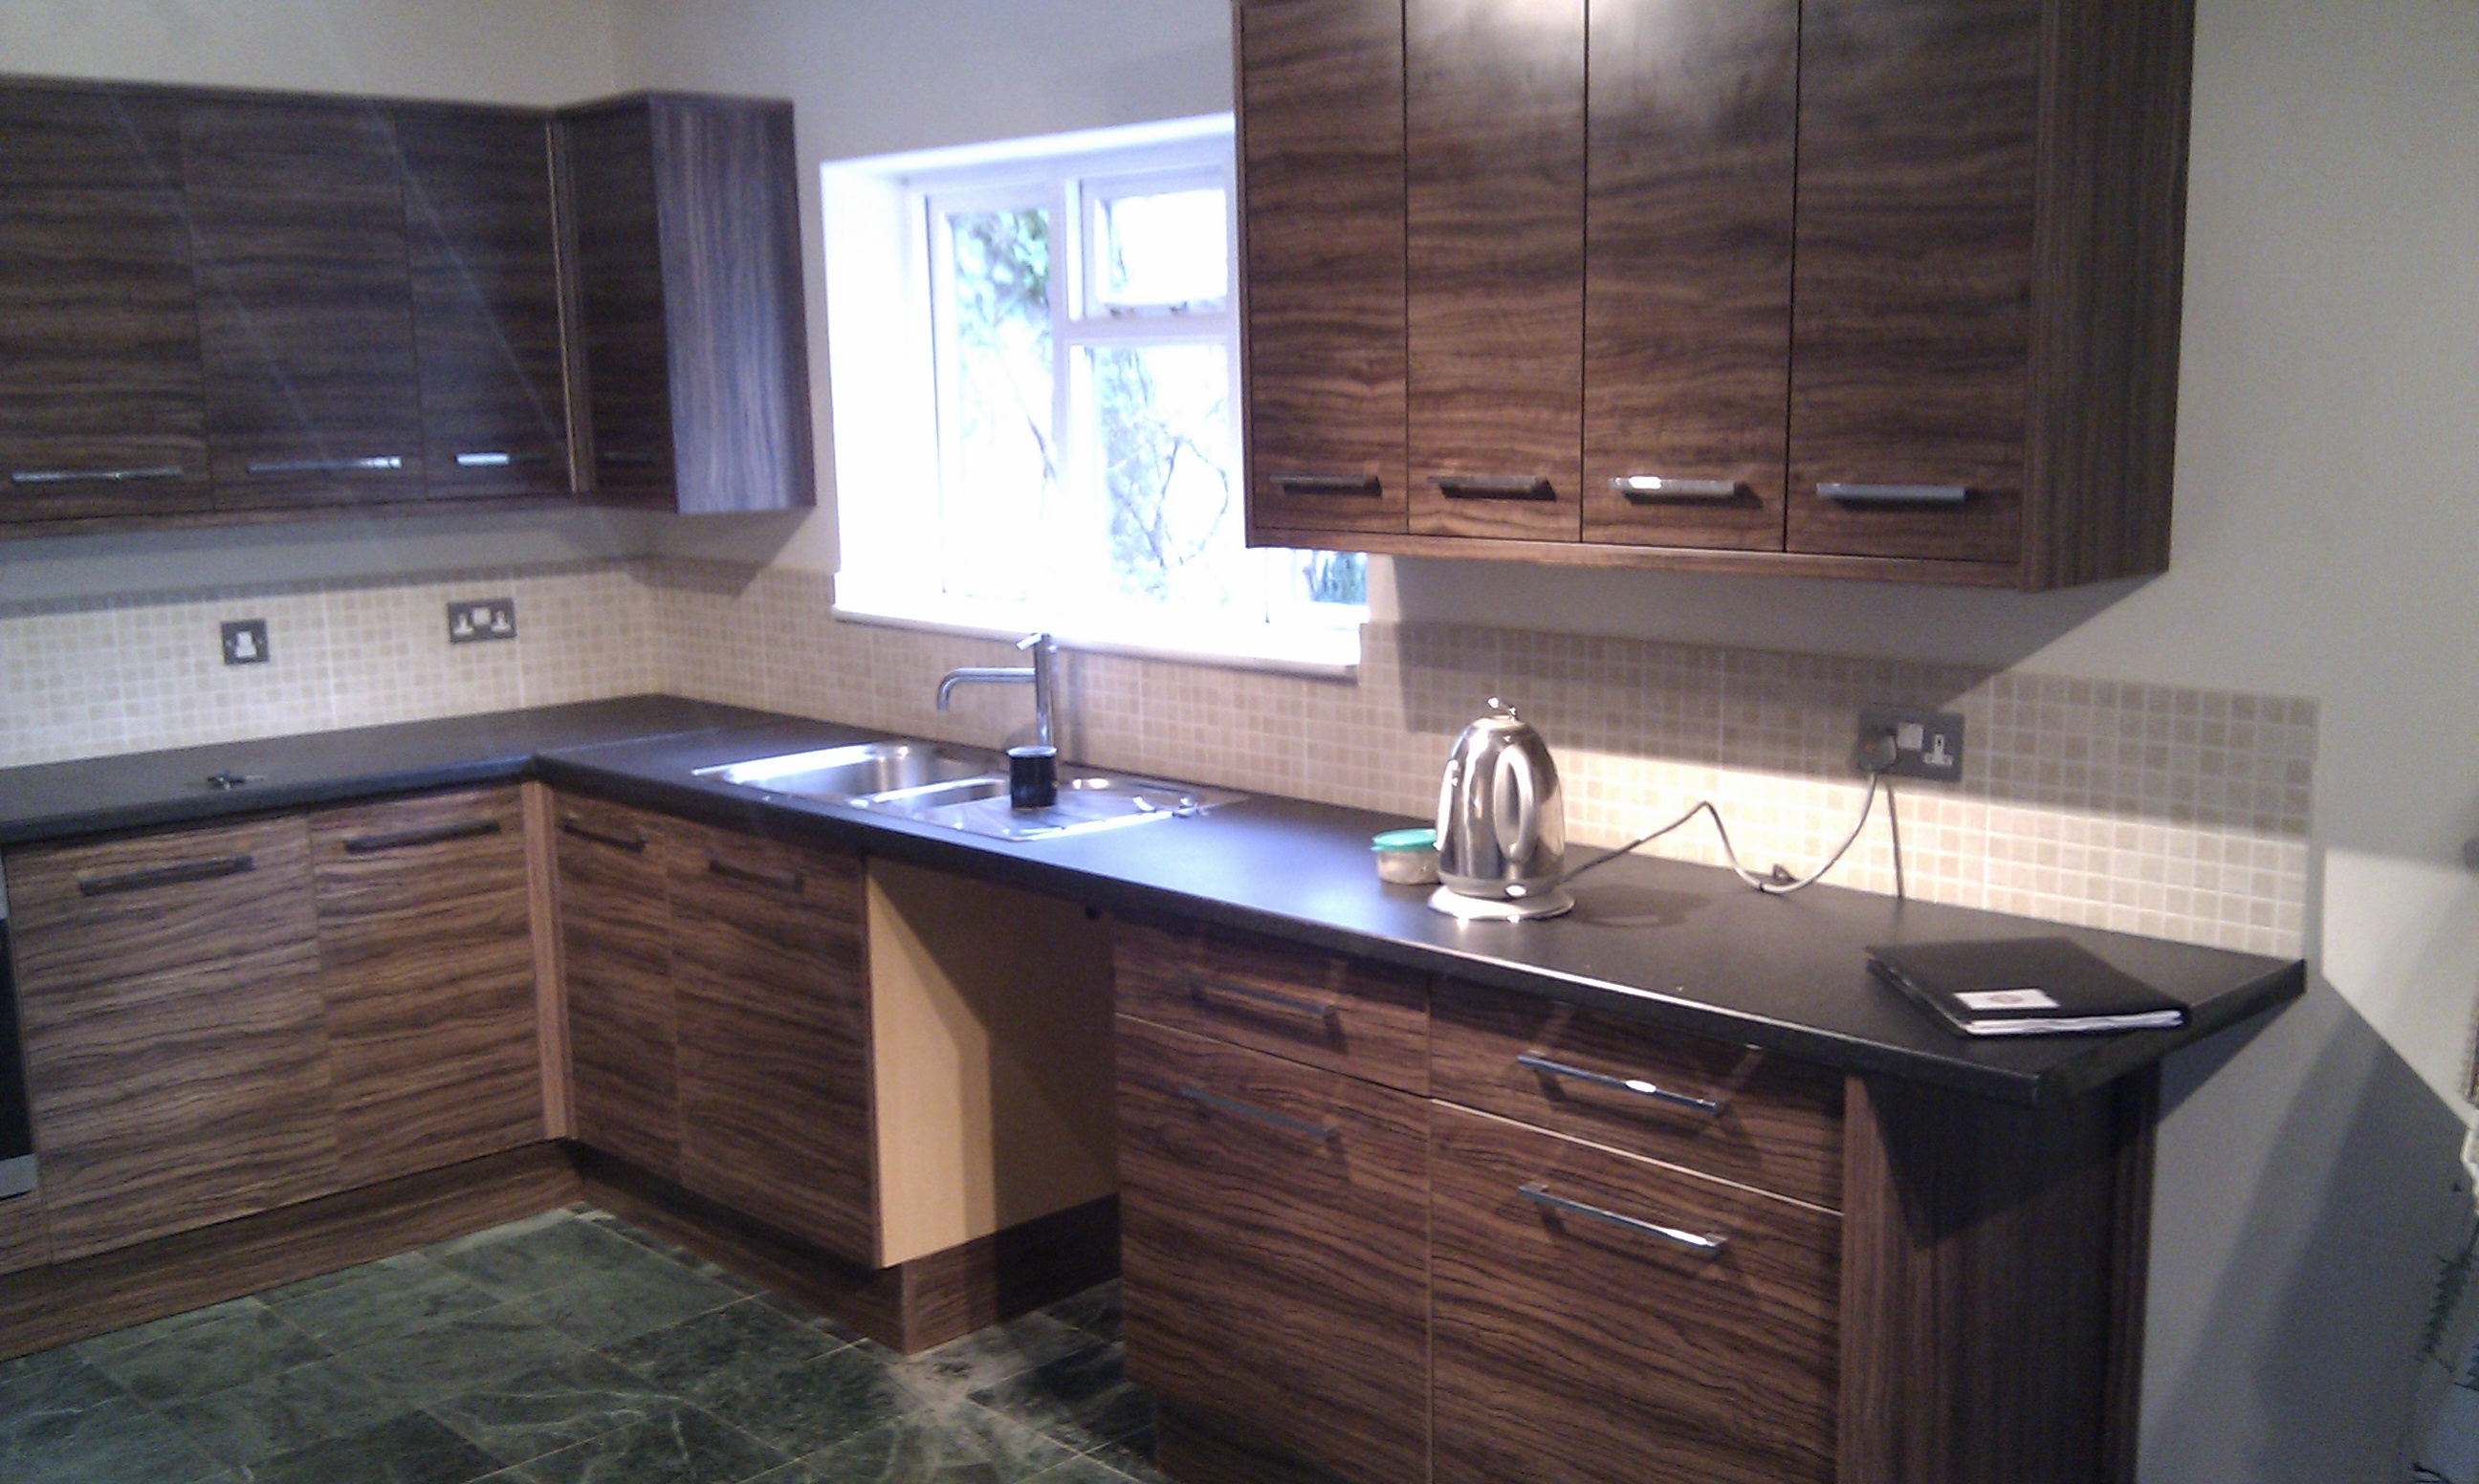 28 Kitchen Design Manchester Quality Fitted Fitted Kitchens In Bury North Manchester